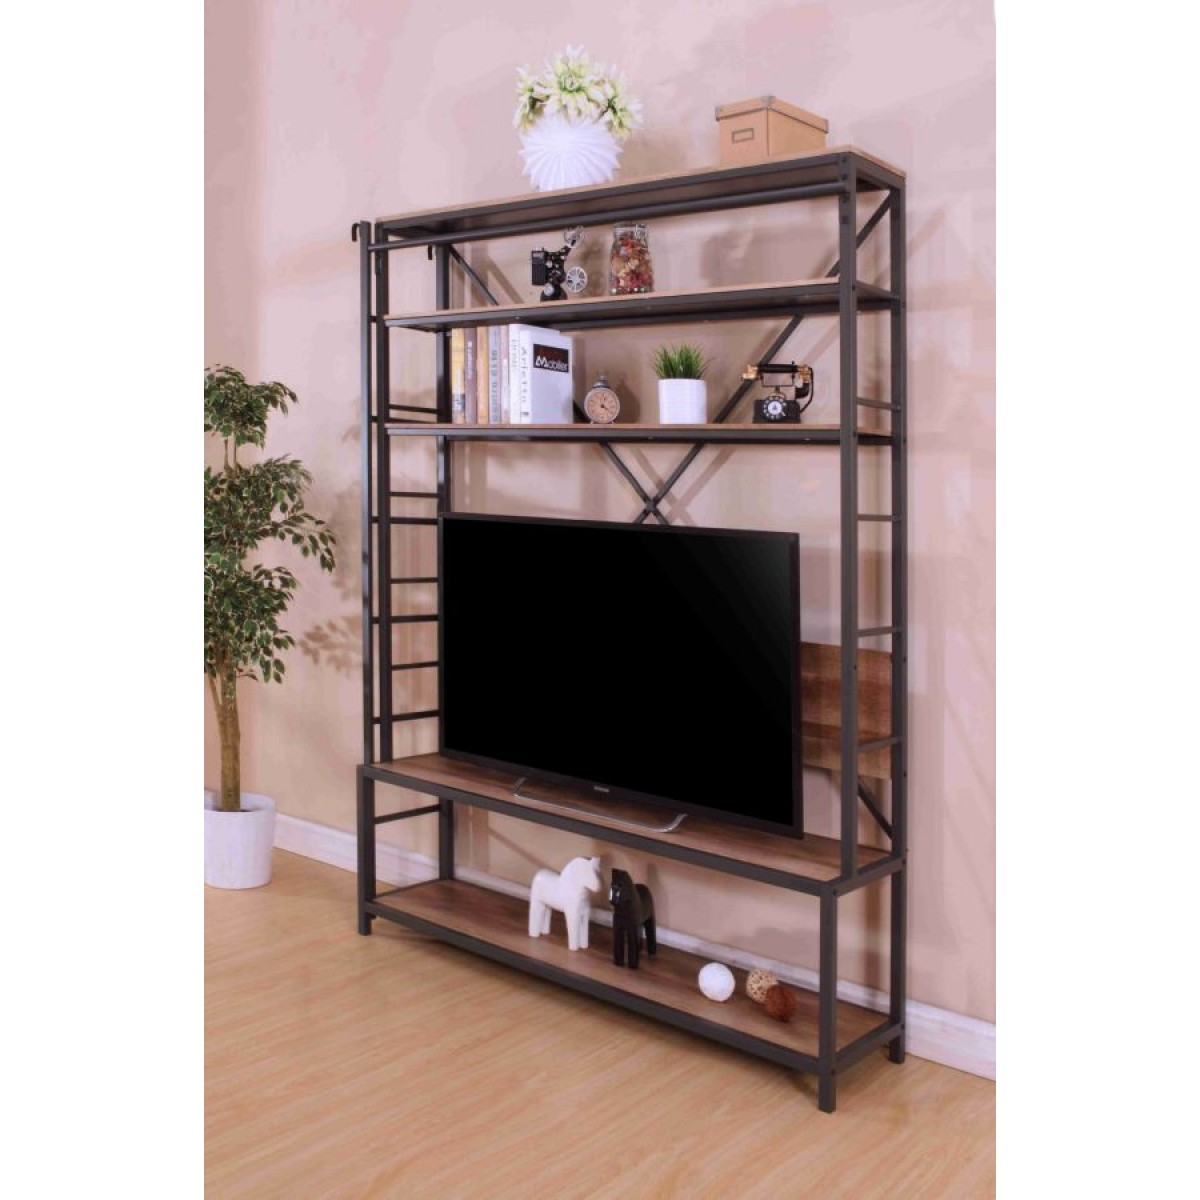 https://www.collyshop.it/media/catalog/product/cache/1/image/1200x1200/9df78eab33525d08d6e5fb8d27136e95/l/i/libreria-porta-tv-stile-industrial-con-5-ripiani-con-scaletta-in-metallo-e-legno-5.jpg